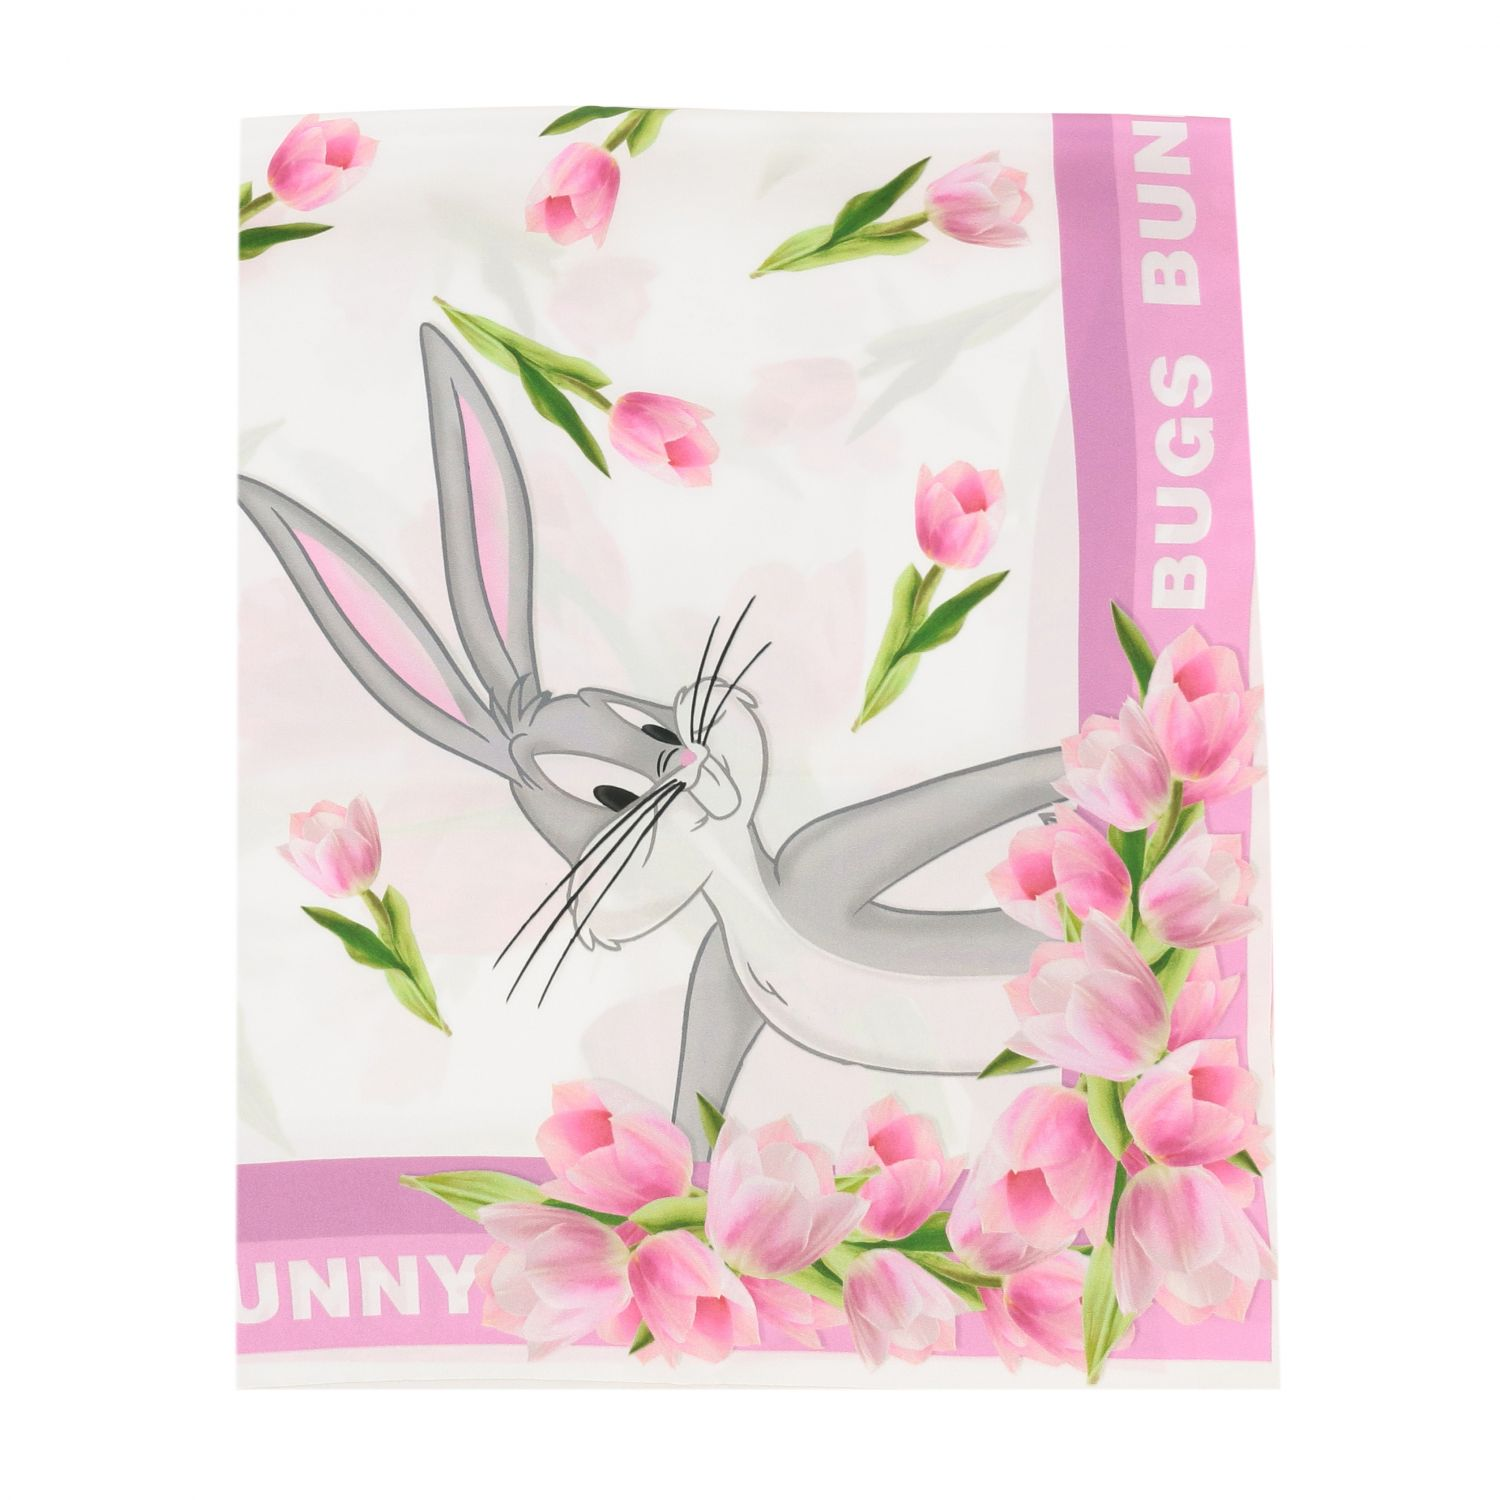 Neck scarf Monnalisa: Monnalisa floral patterned scarf with Bugs Bunny white 1